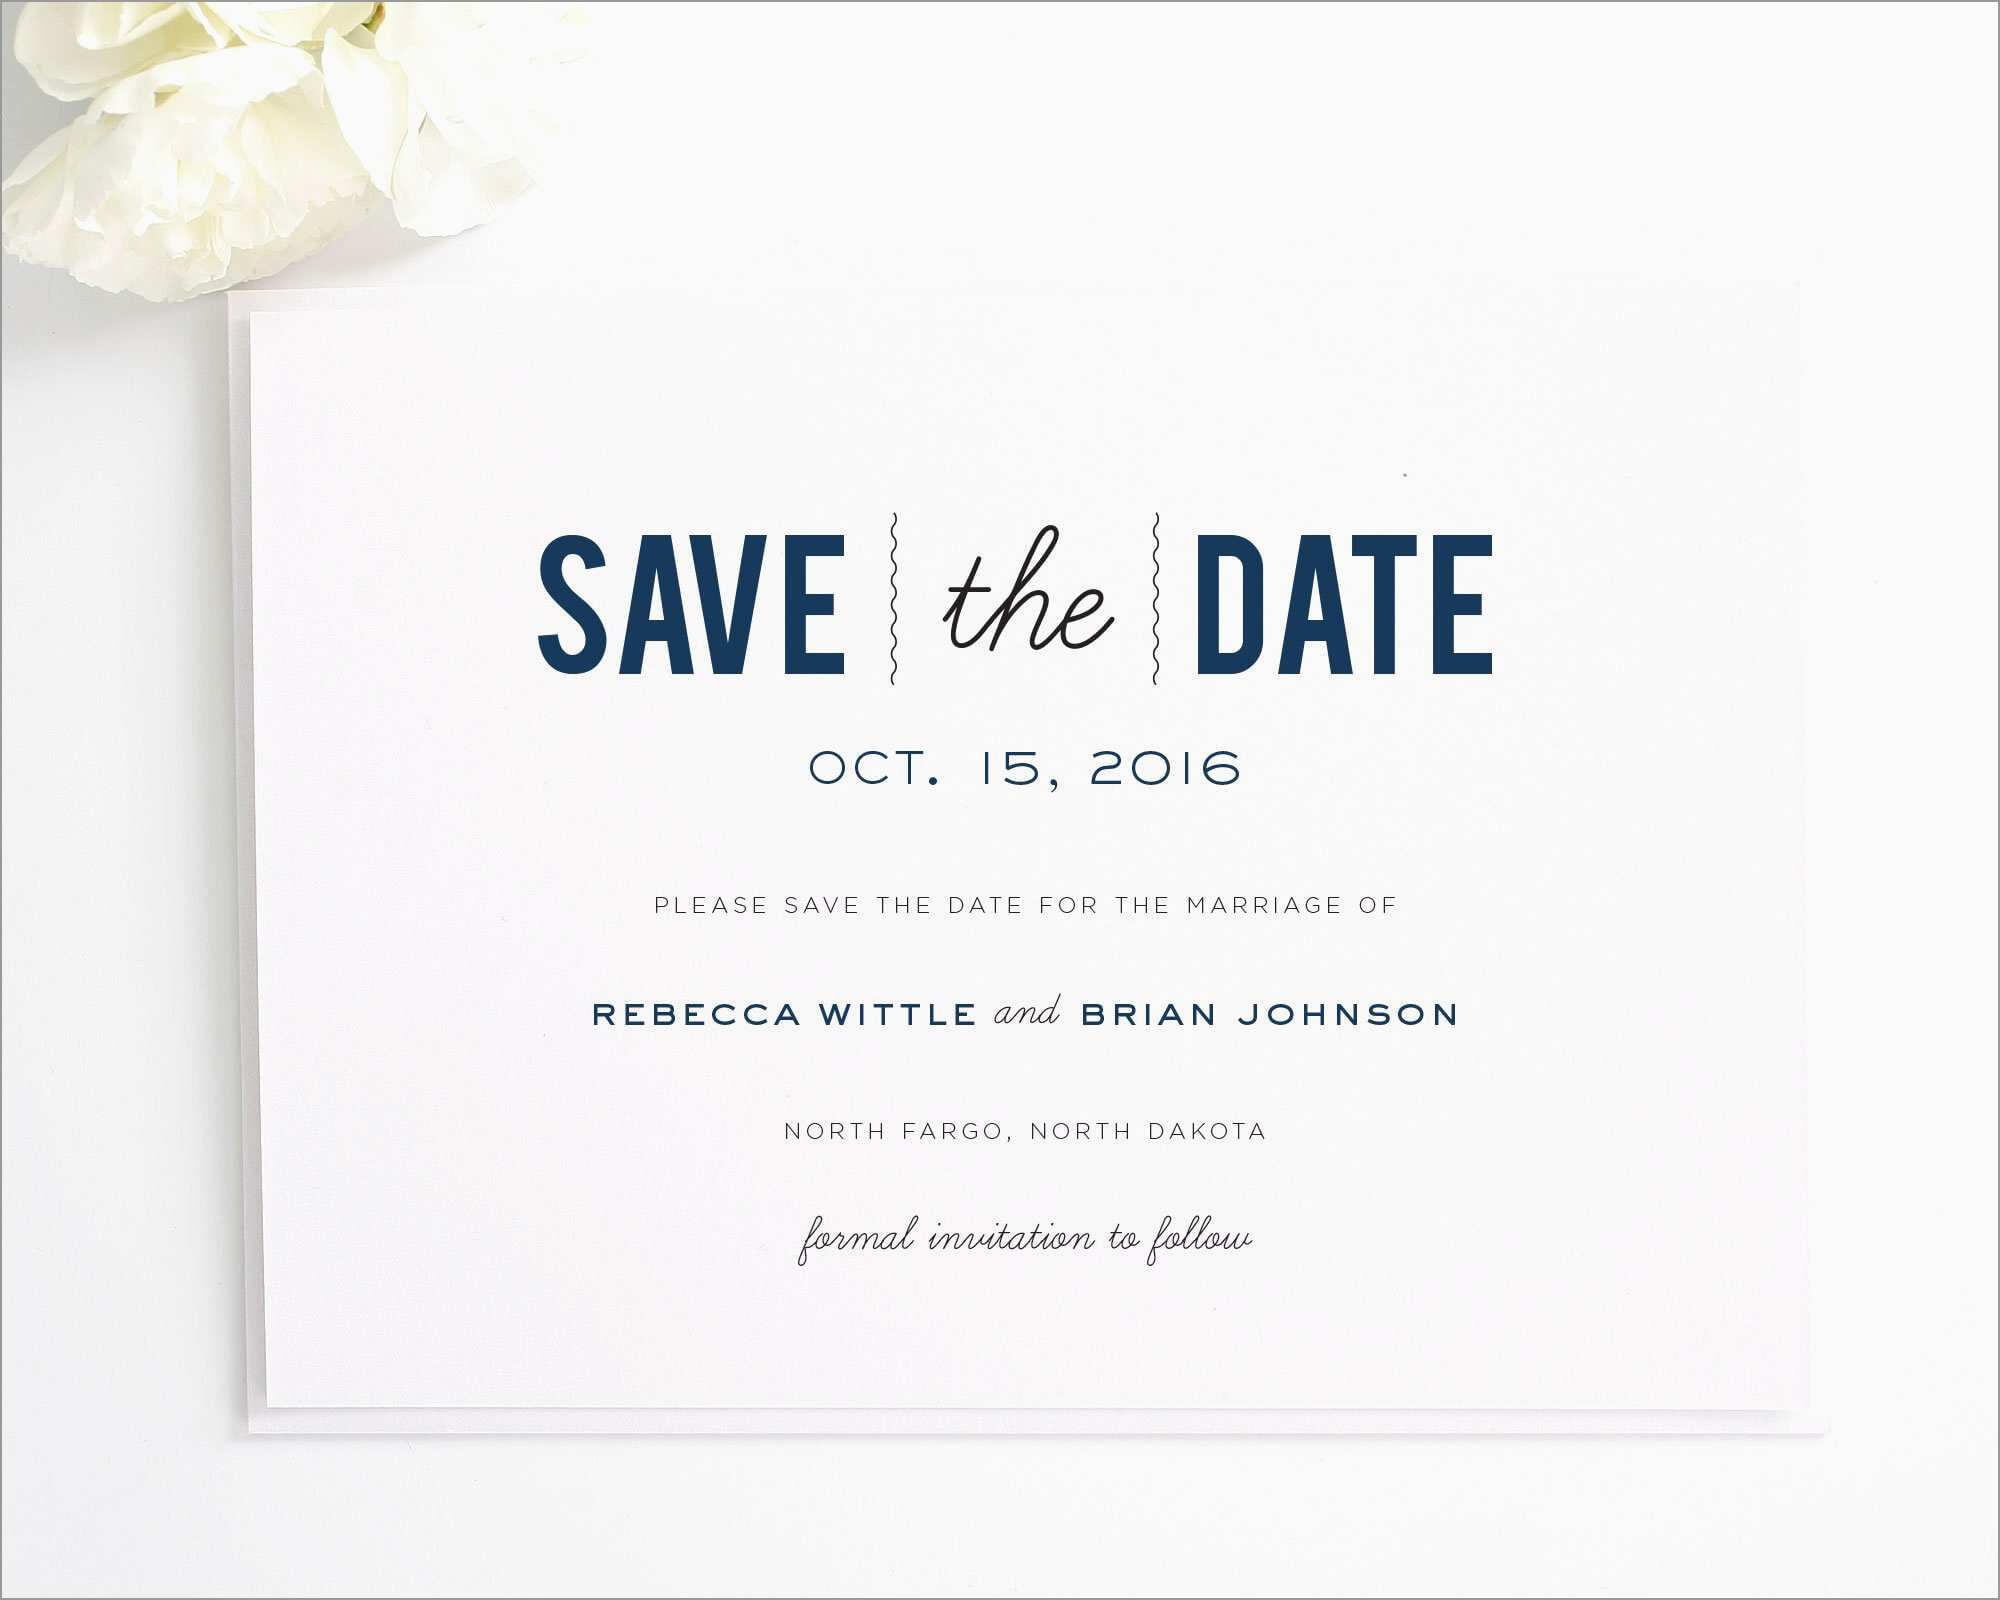 031 Free Save The Date Templates Word Wonderfully Monogram In Save The Date Template Word